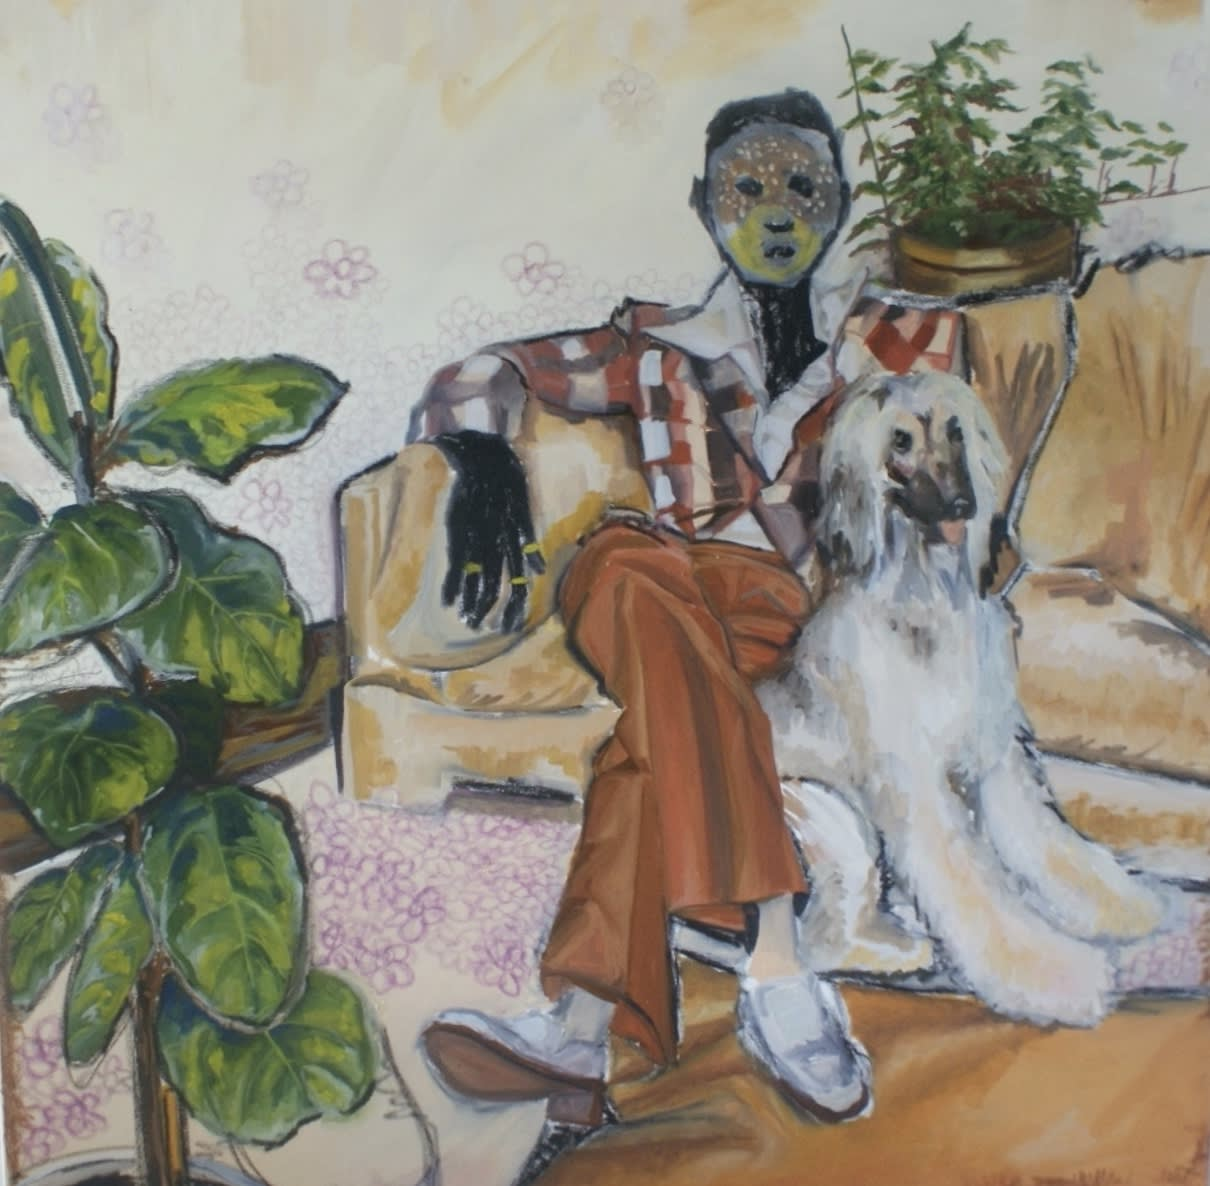 Alexis Pye, Individual with Dog, 2020 oil and pastels on primed stretched canvas, 48 x 48 in